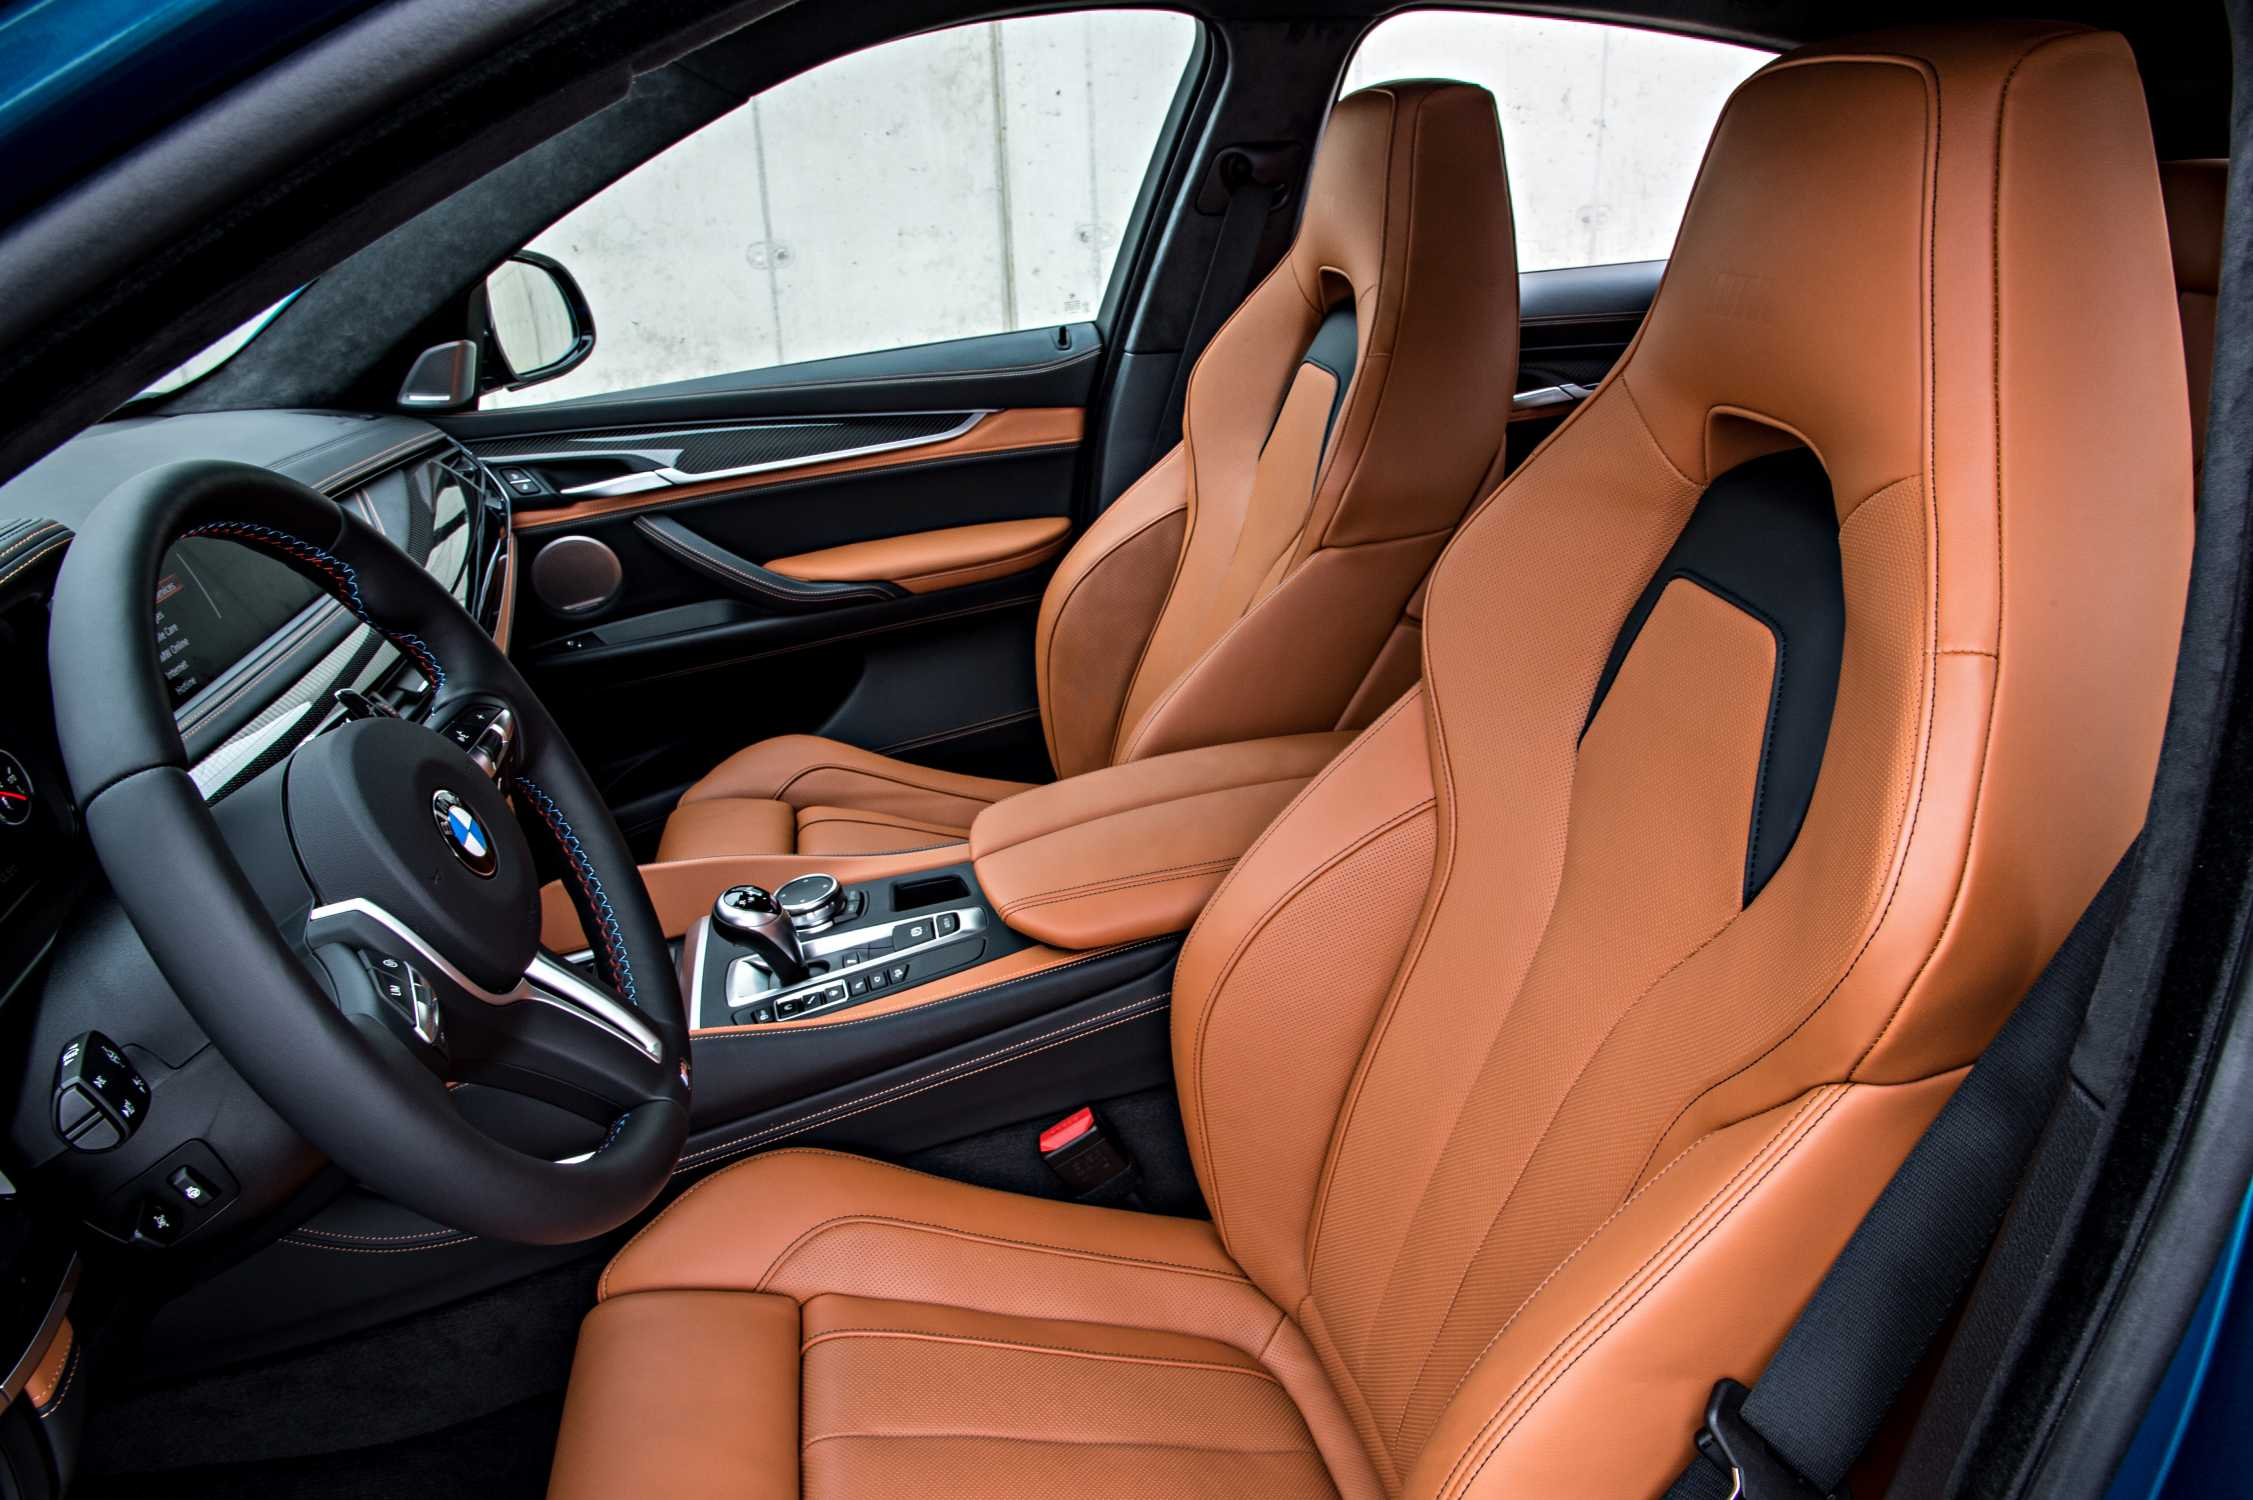 The New Bmw X6 M On Location Interior 01 2015